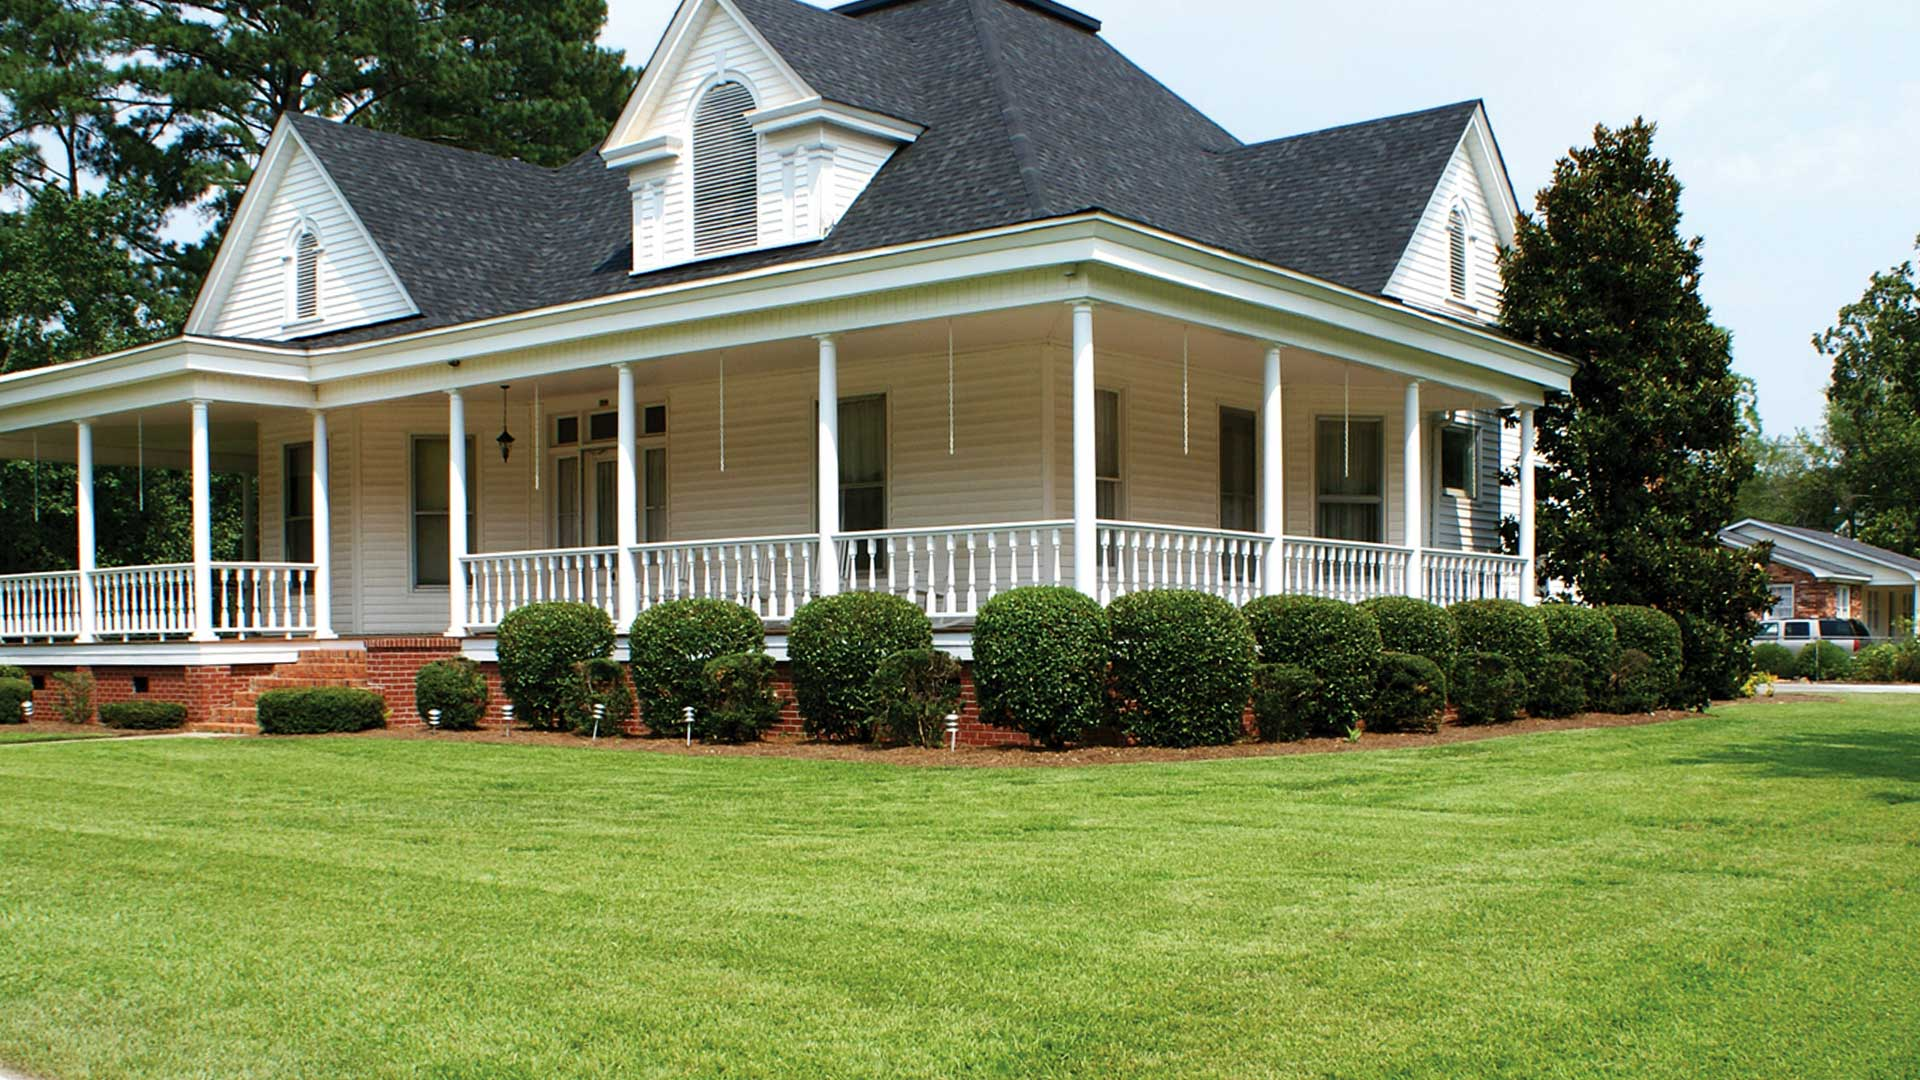 Home in Louisville, GA that we landscaped and provide lawn care.